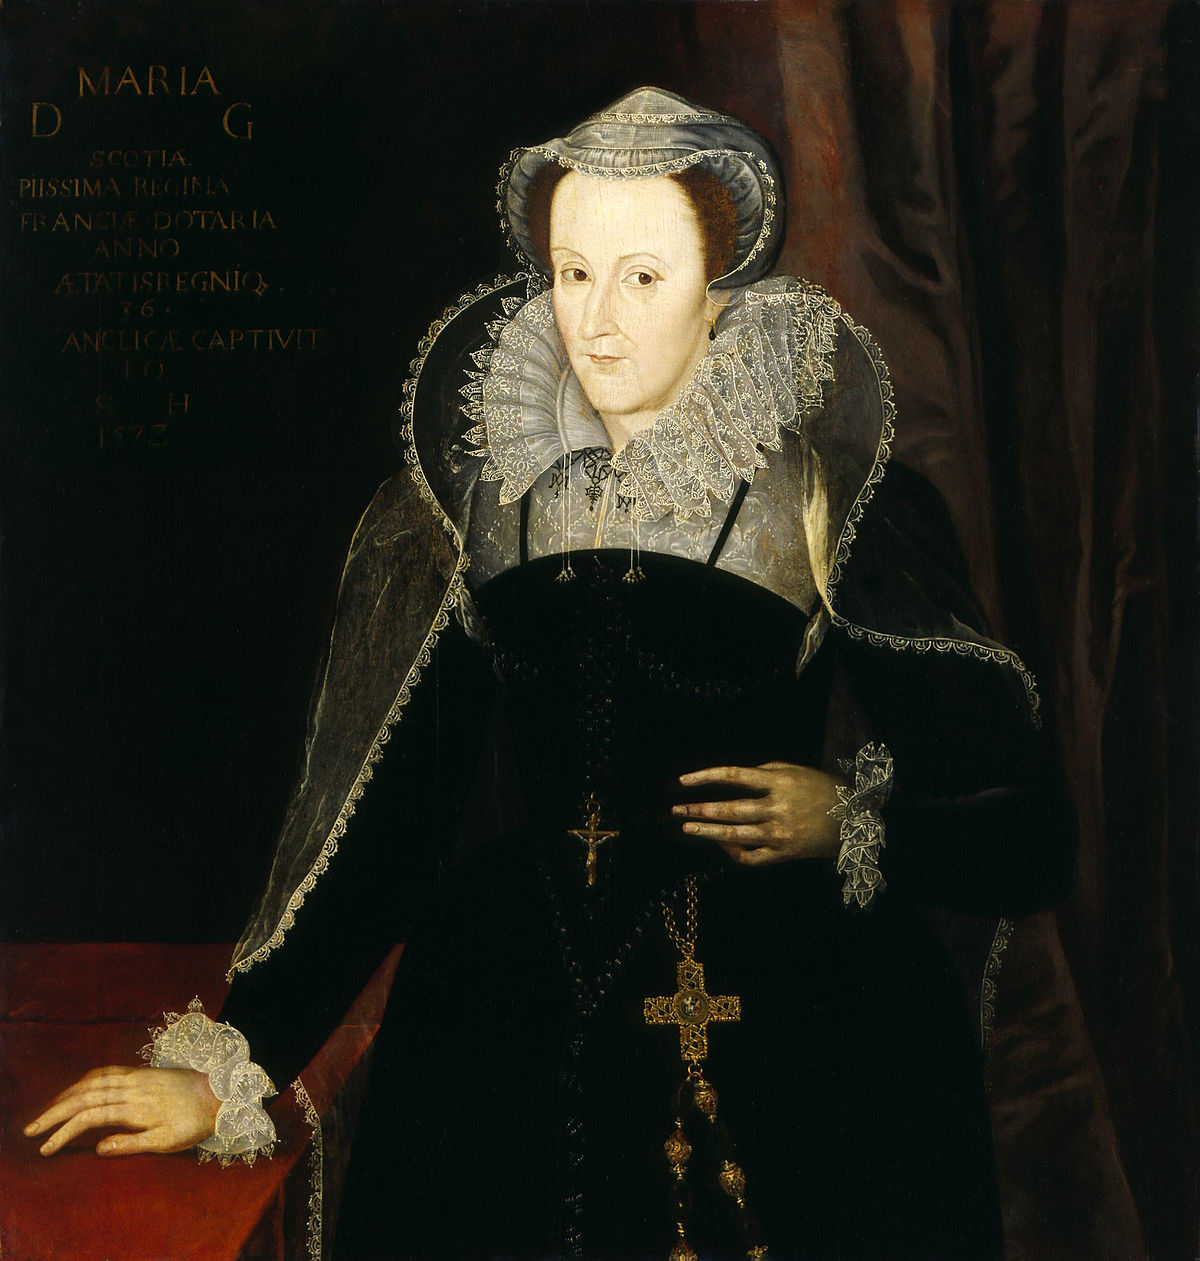 marry queen of scots A summary of conflict with mary queen of scots in 's queen elizabeth i learn exactly what happened in this chapter, scene, or section of queen elizabeth i and what it means.